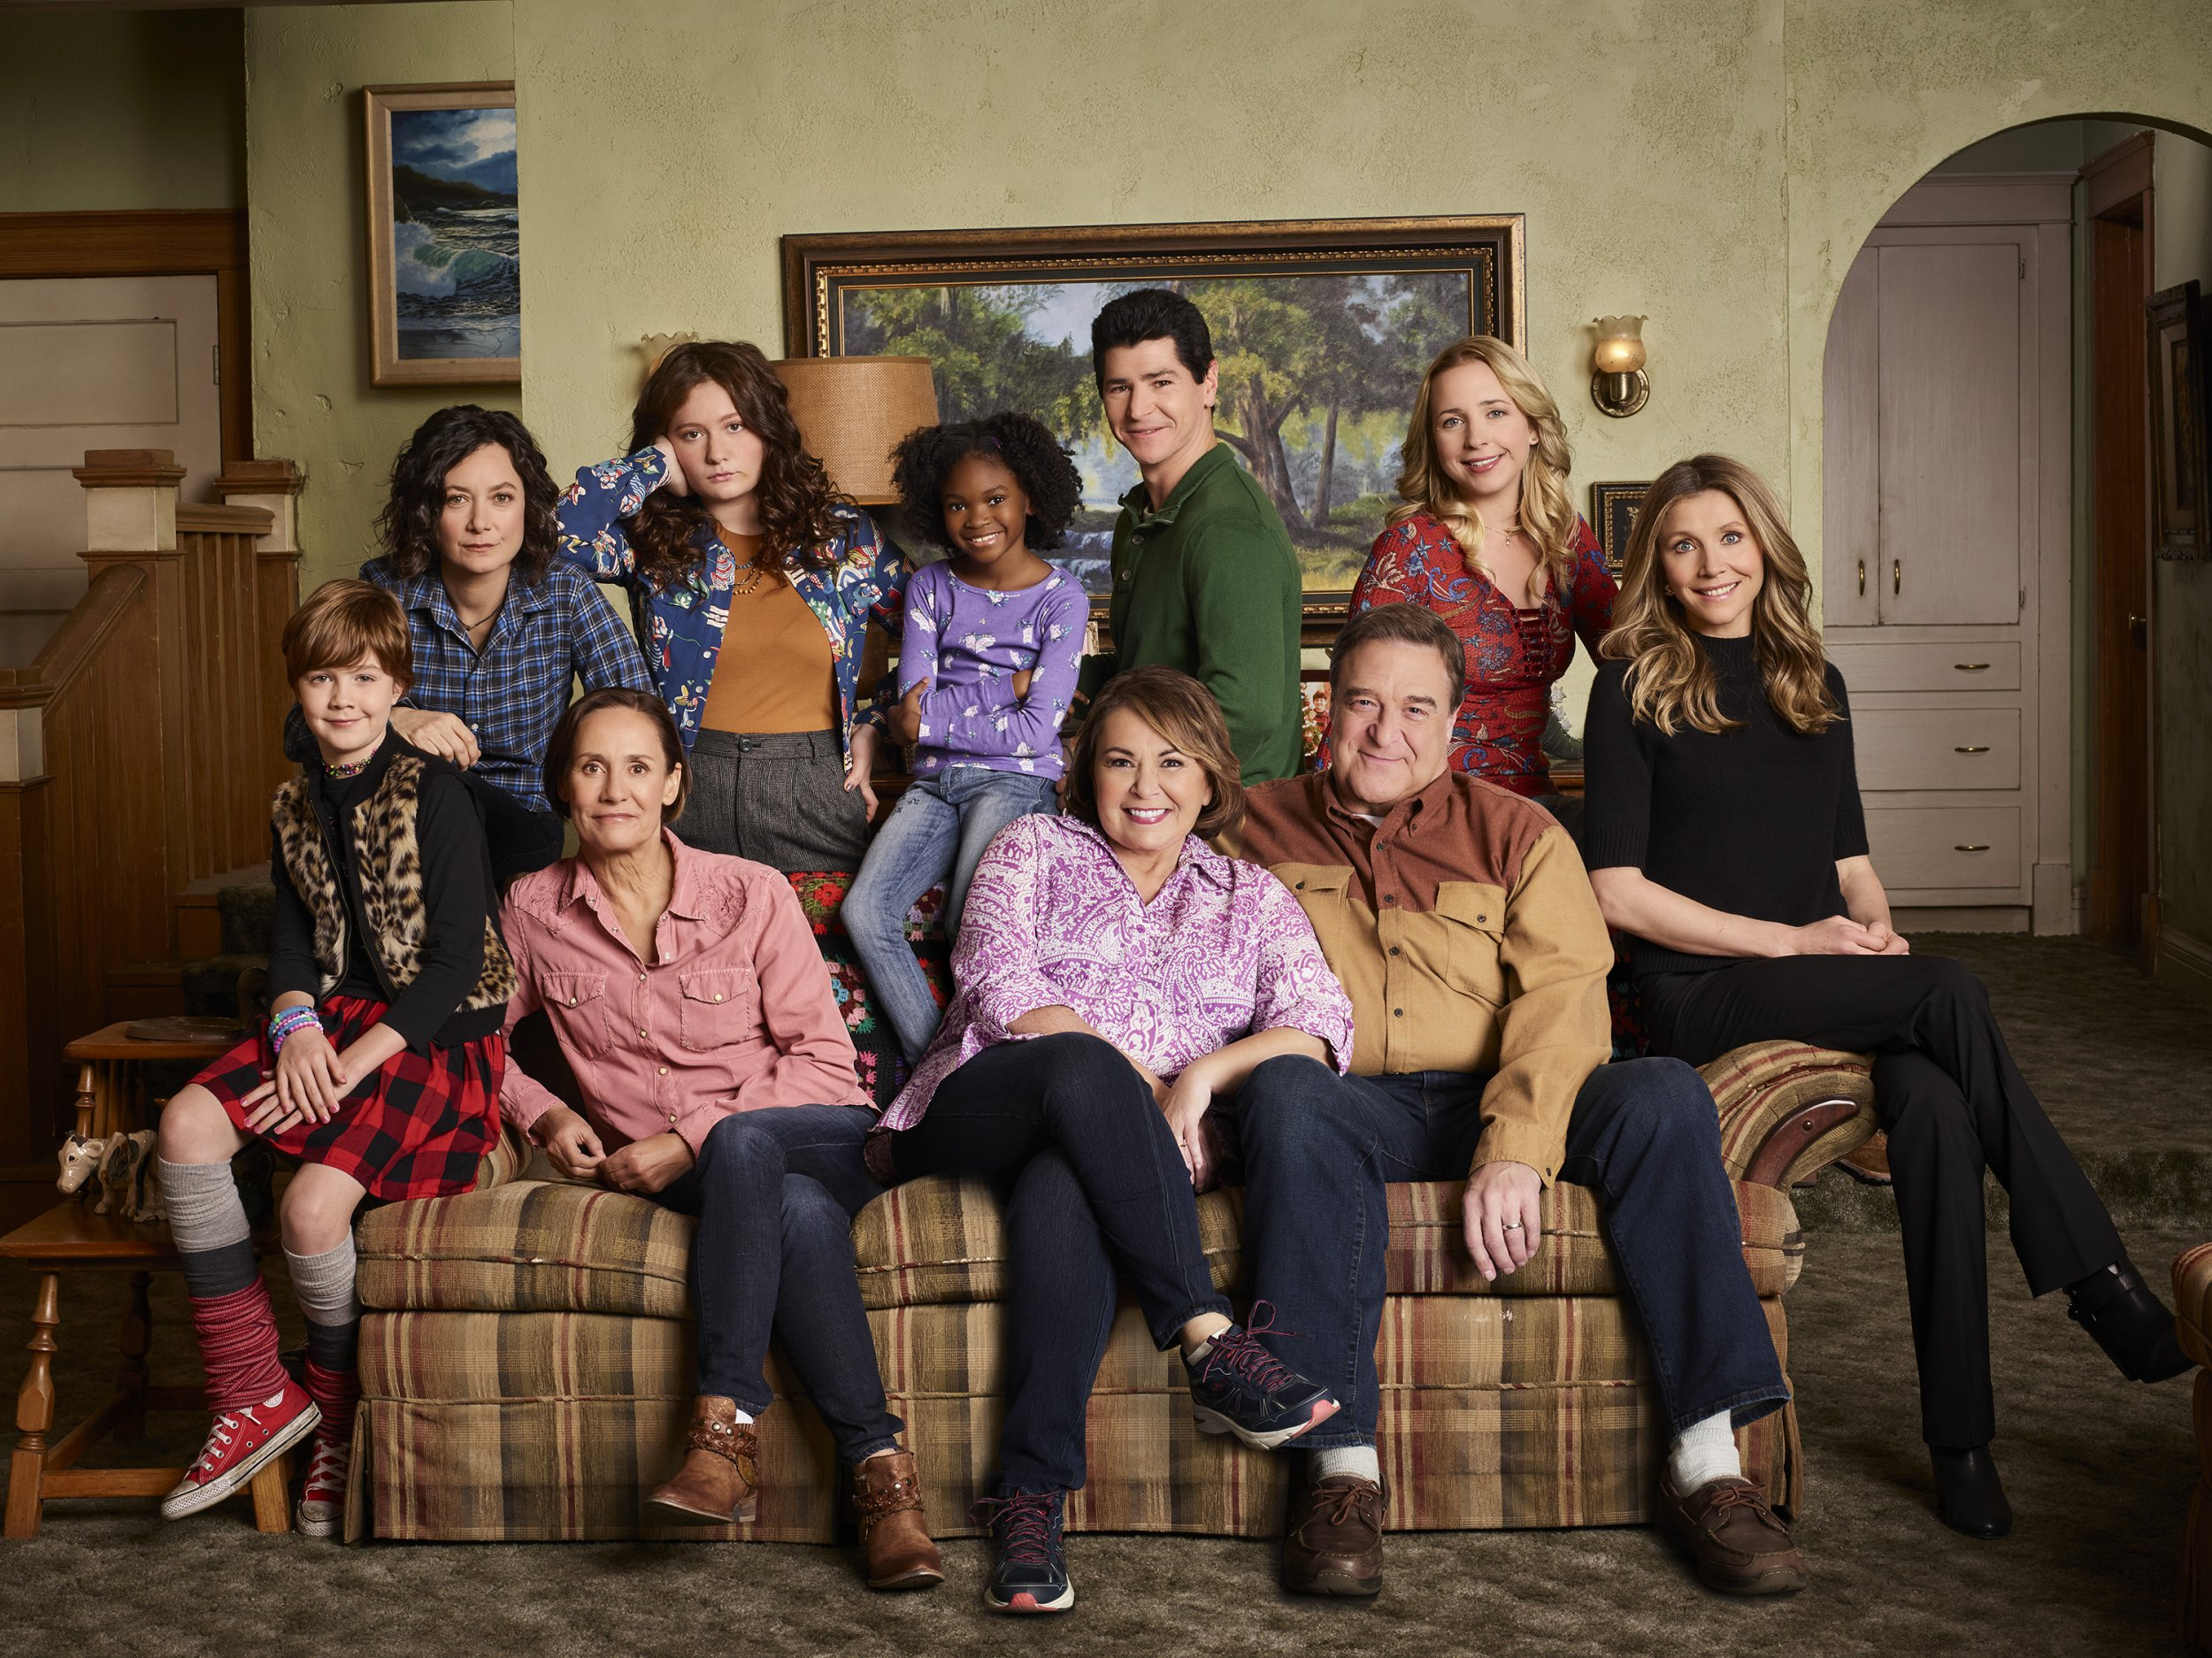 Charlie Sheen, Debra Messing and more delighted Roseanne's been cancelled after racist tweet